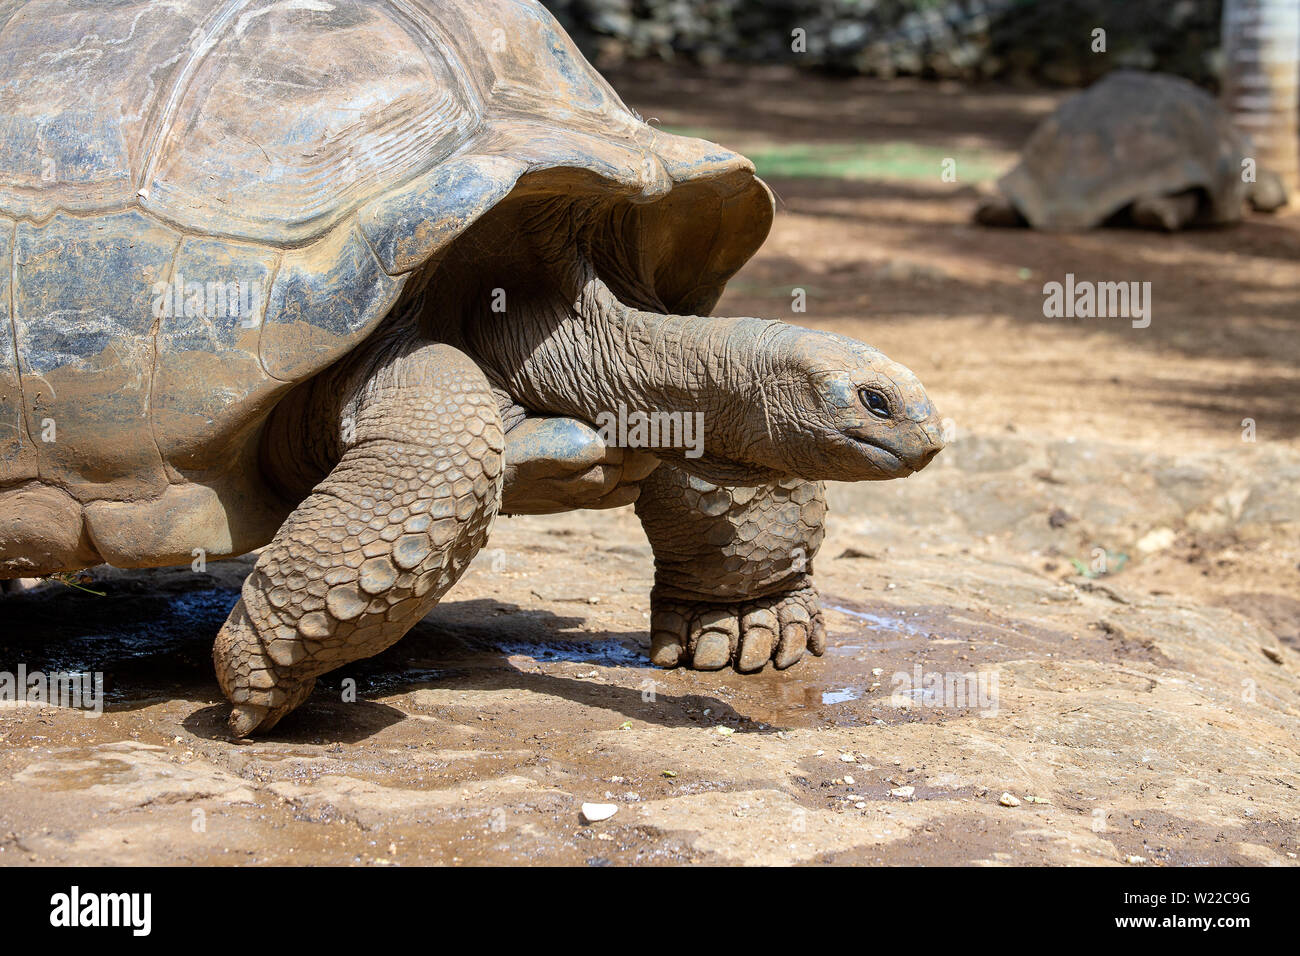 Giant turtles, dipsochelys gigantea in tropical island Mauritius , Close up - Stock Image